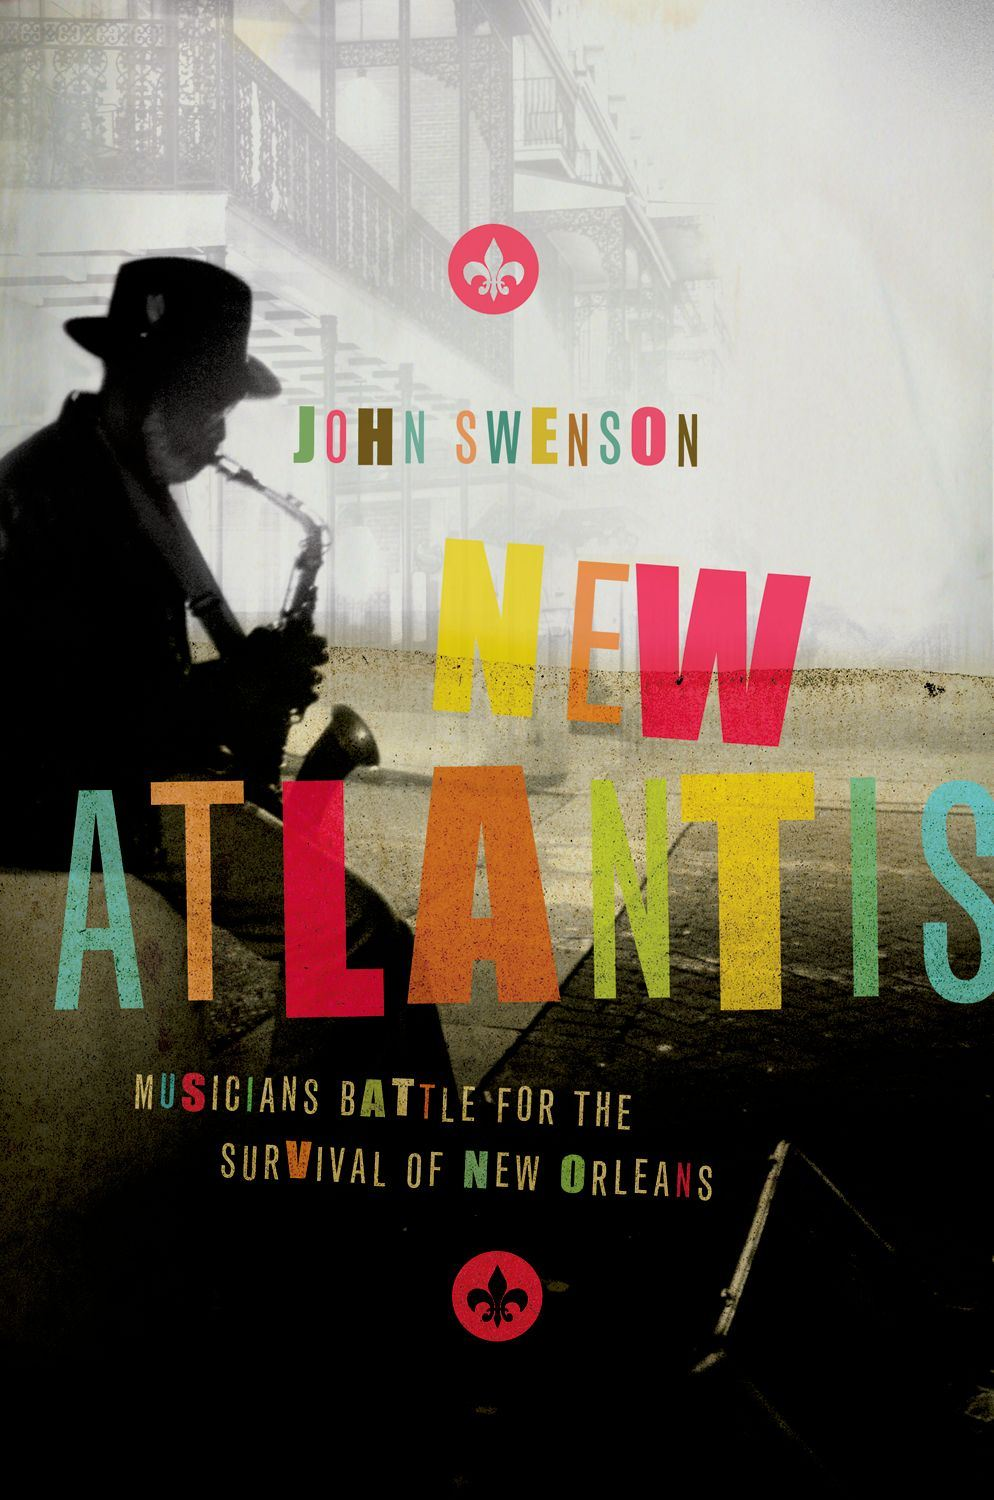 New Atlantis:Musicians Battle for the Survival of New Orleans  By: John Swenson